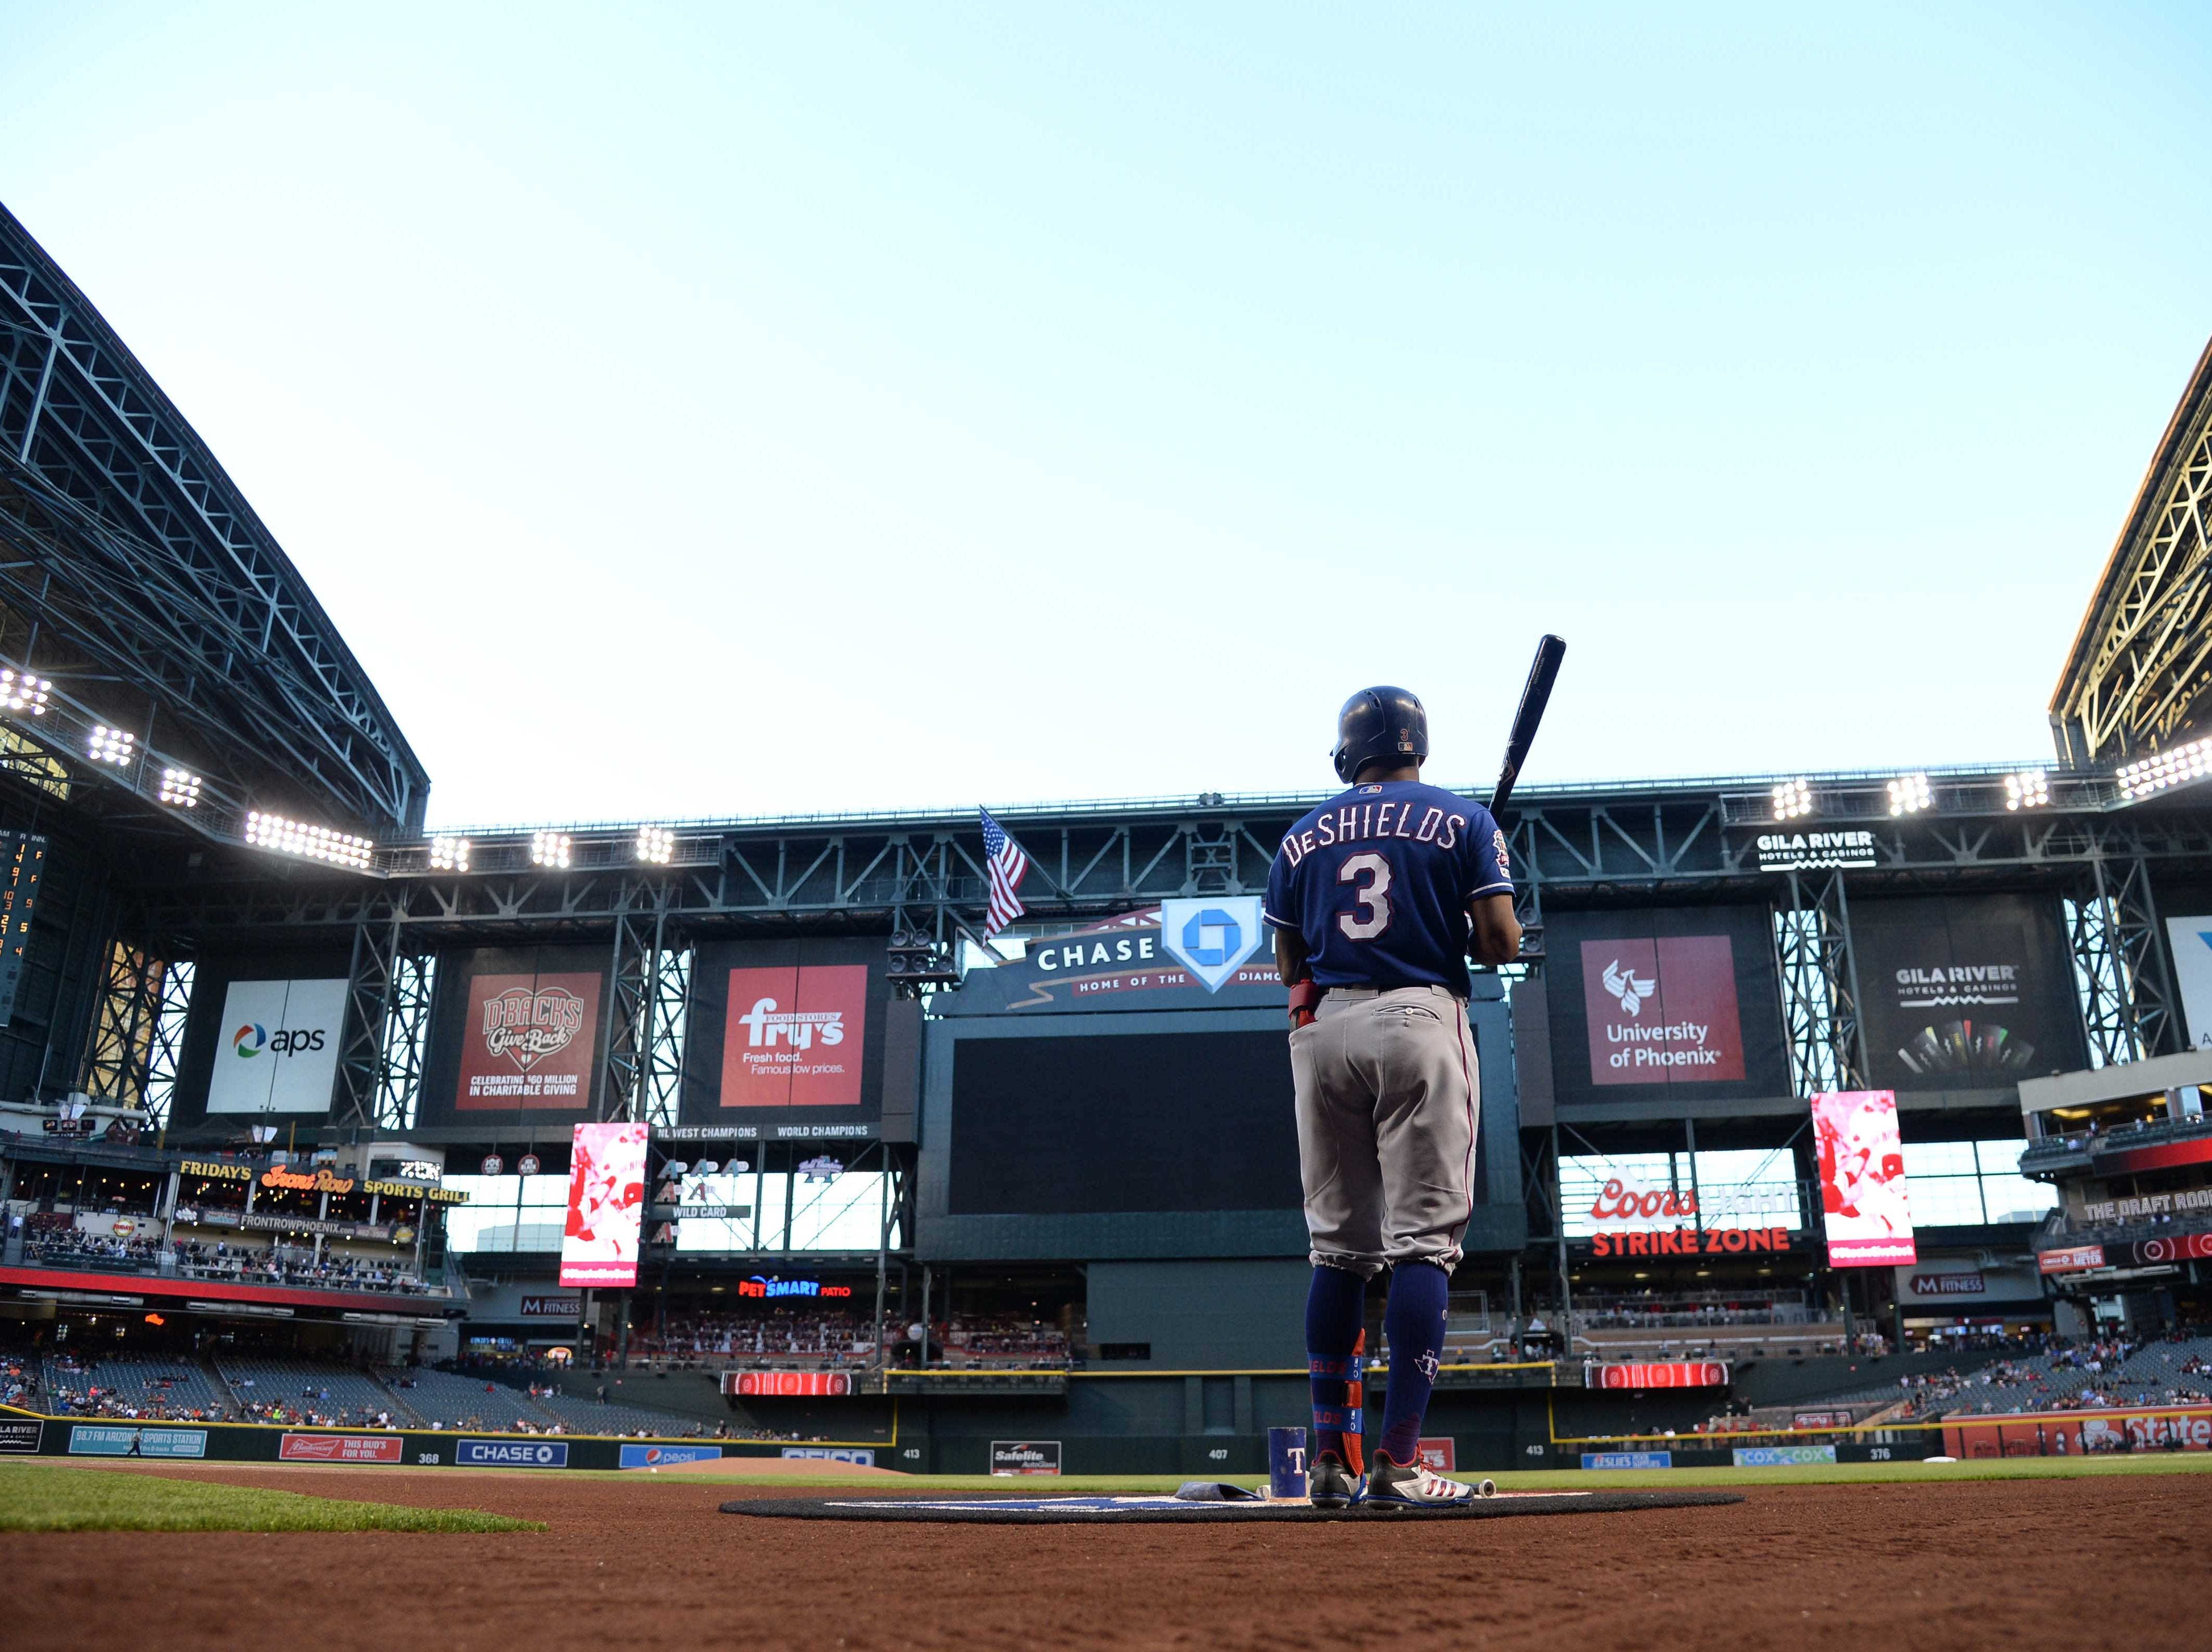 Apr 10, 2019; Phoenix, AZ, USA; Texas Rangers left fielder Delino DeShields (3) waits on deck prior to the first inning against the Arizona Diamondbacks at Chase Field. Mandatory Credit: Joe Camporeale-USA TODAY Sports